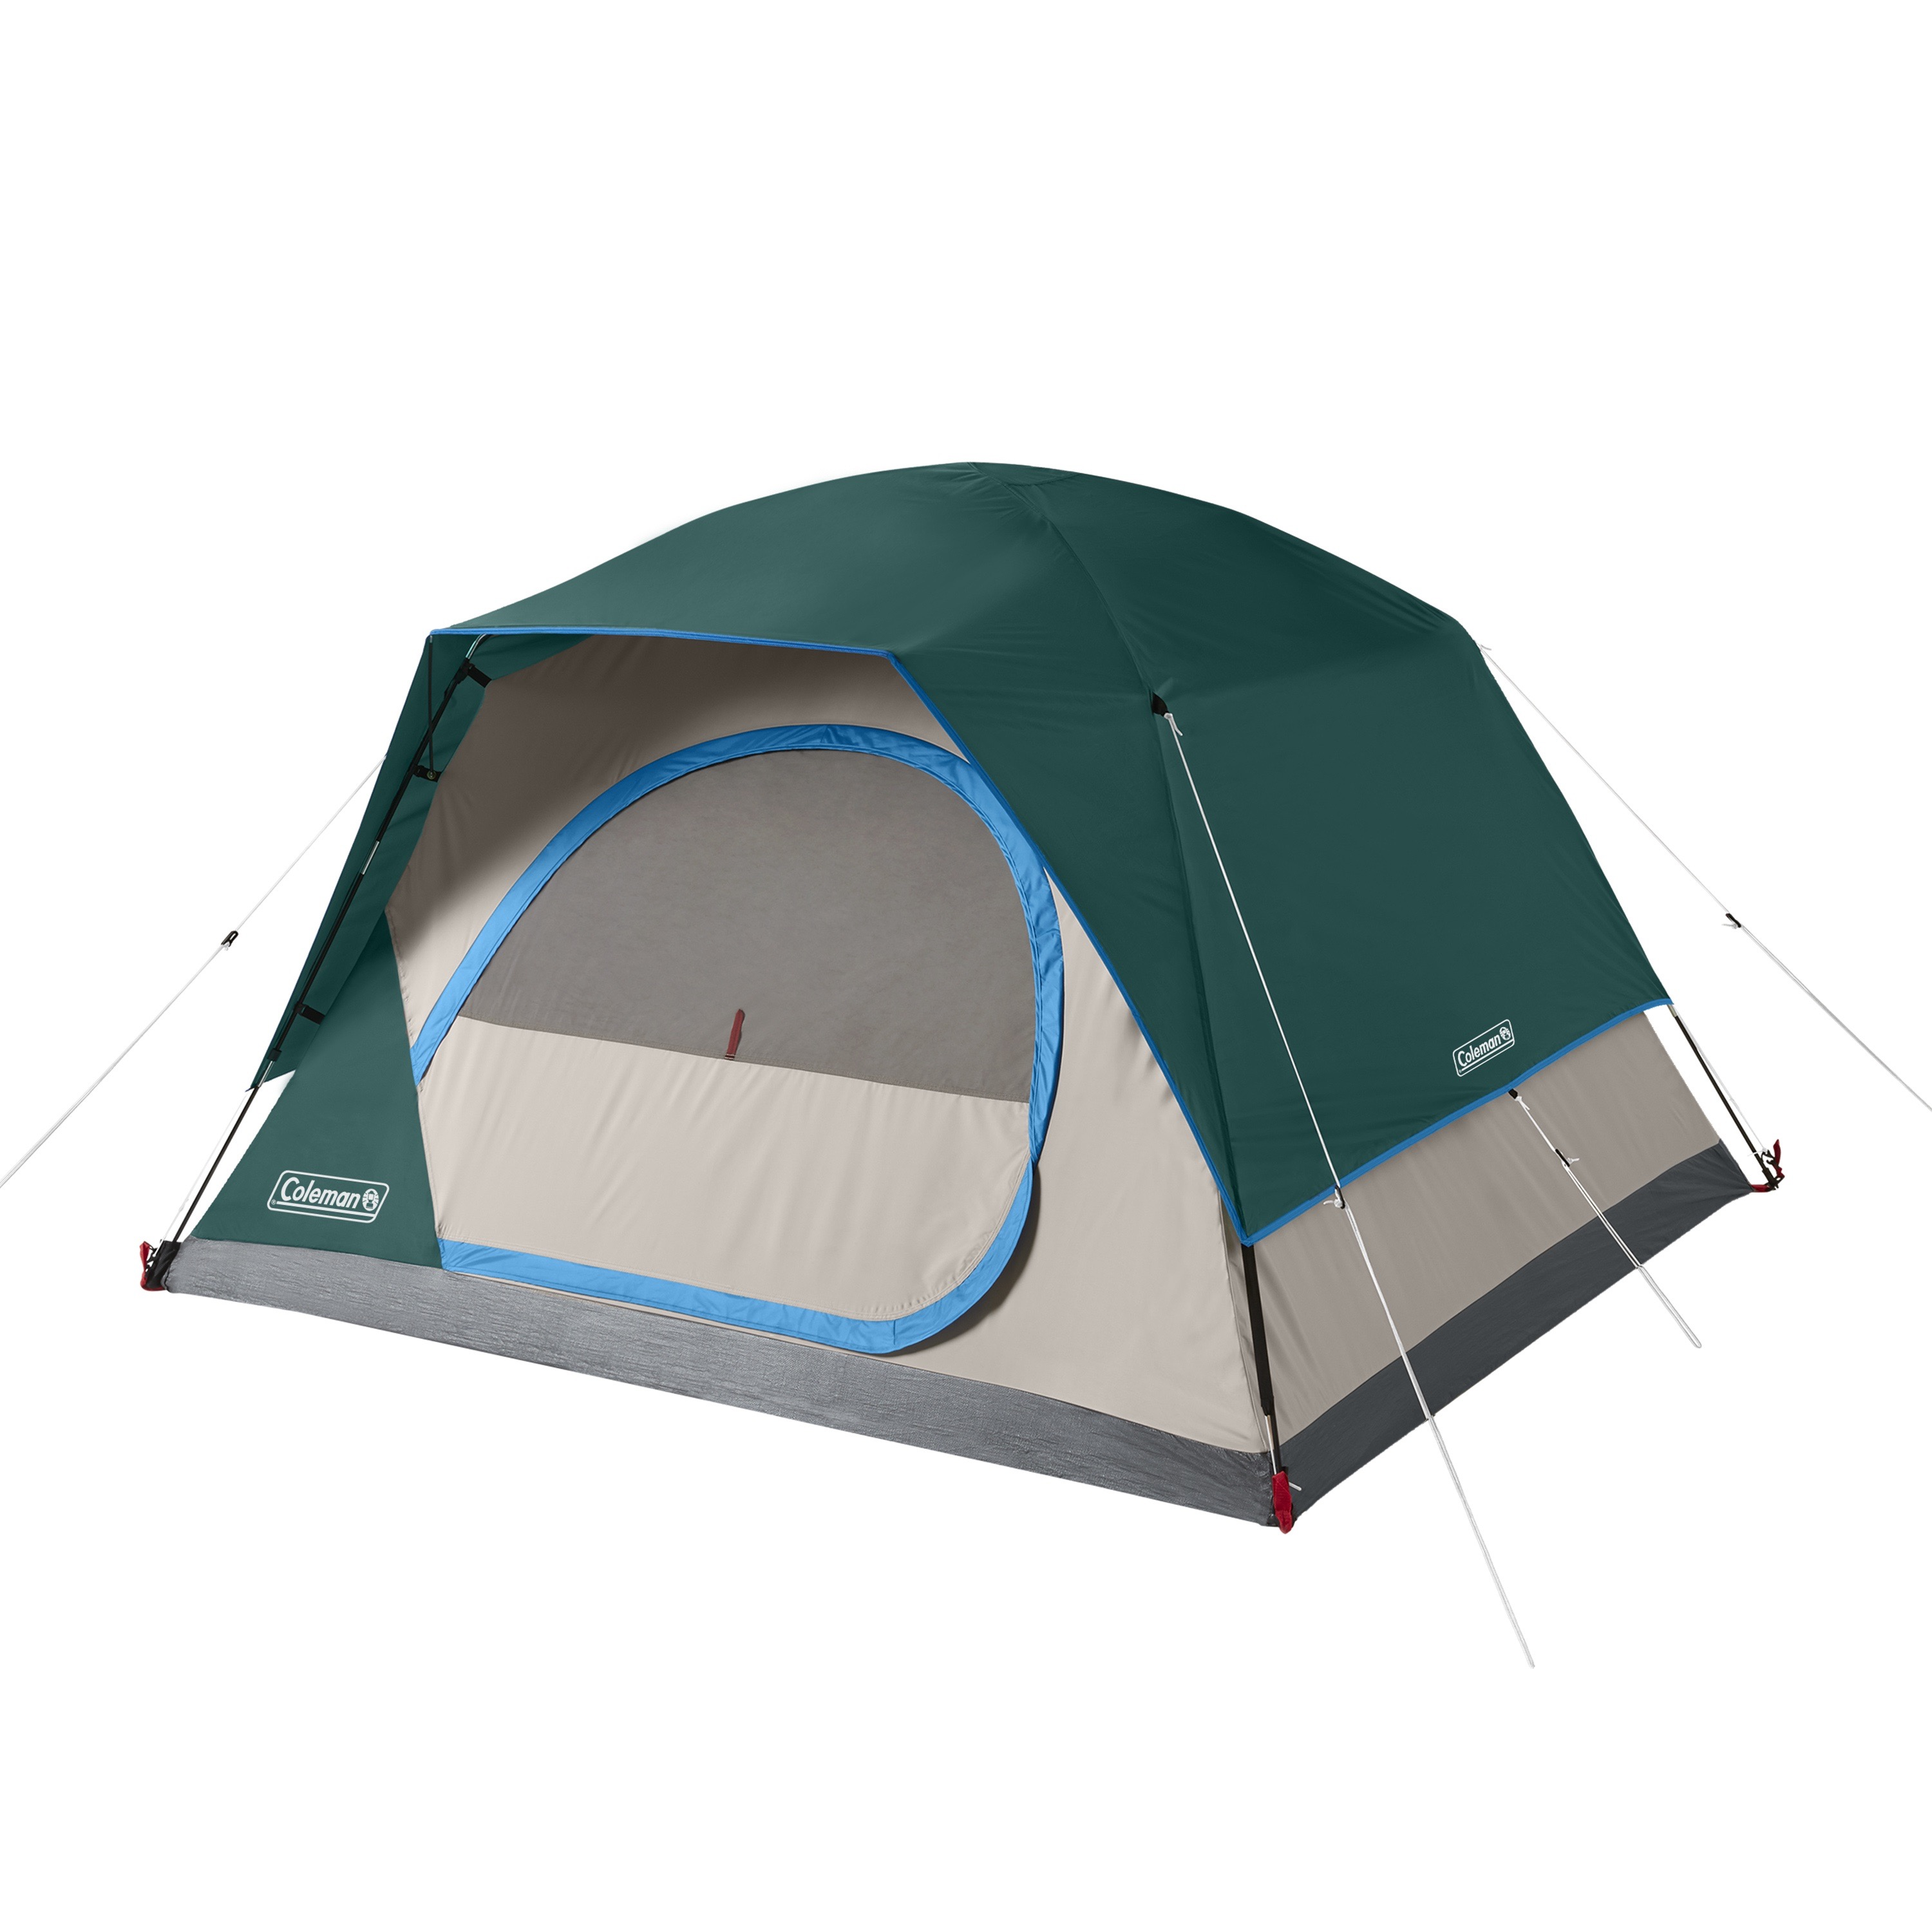 Coleman 6-Person 10' x 8' Skydome Camping Tent, Evergreen ...